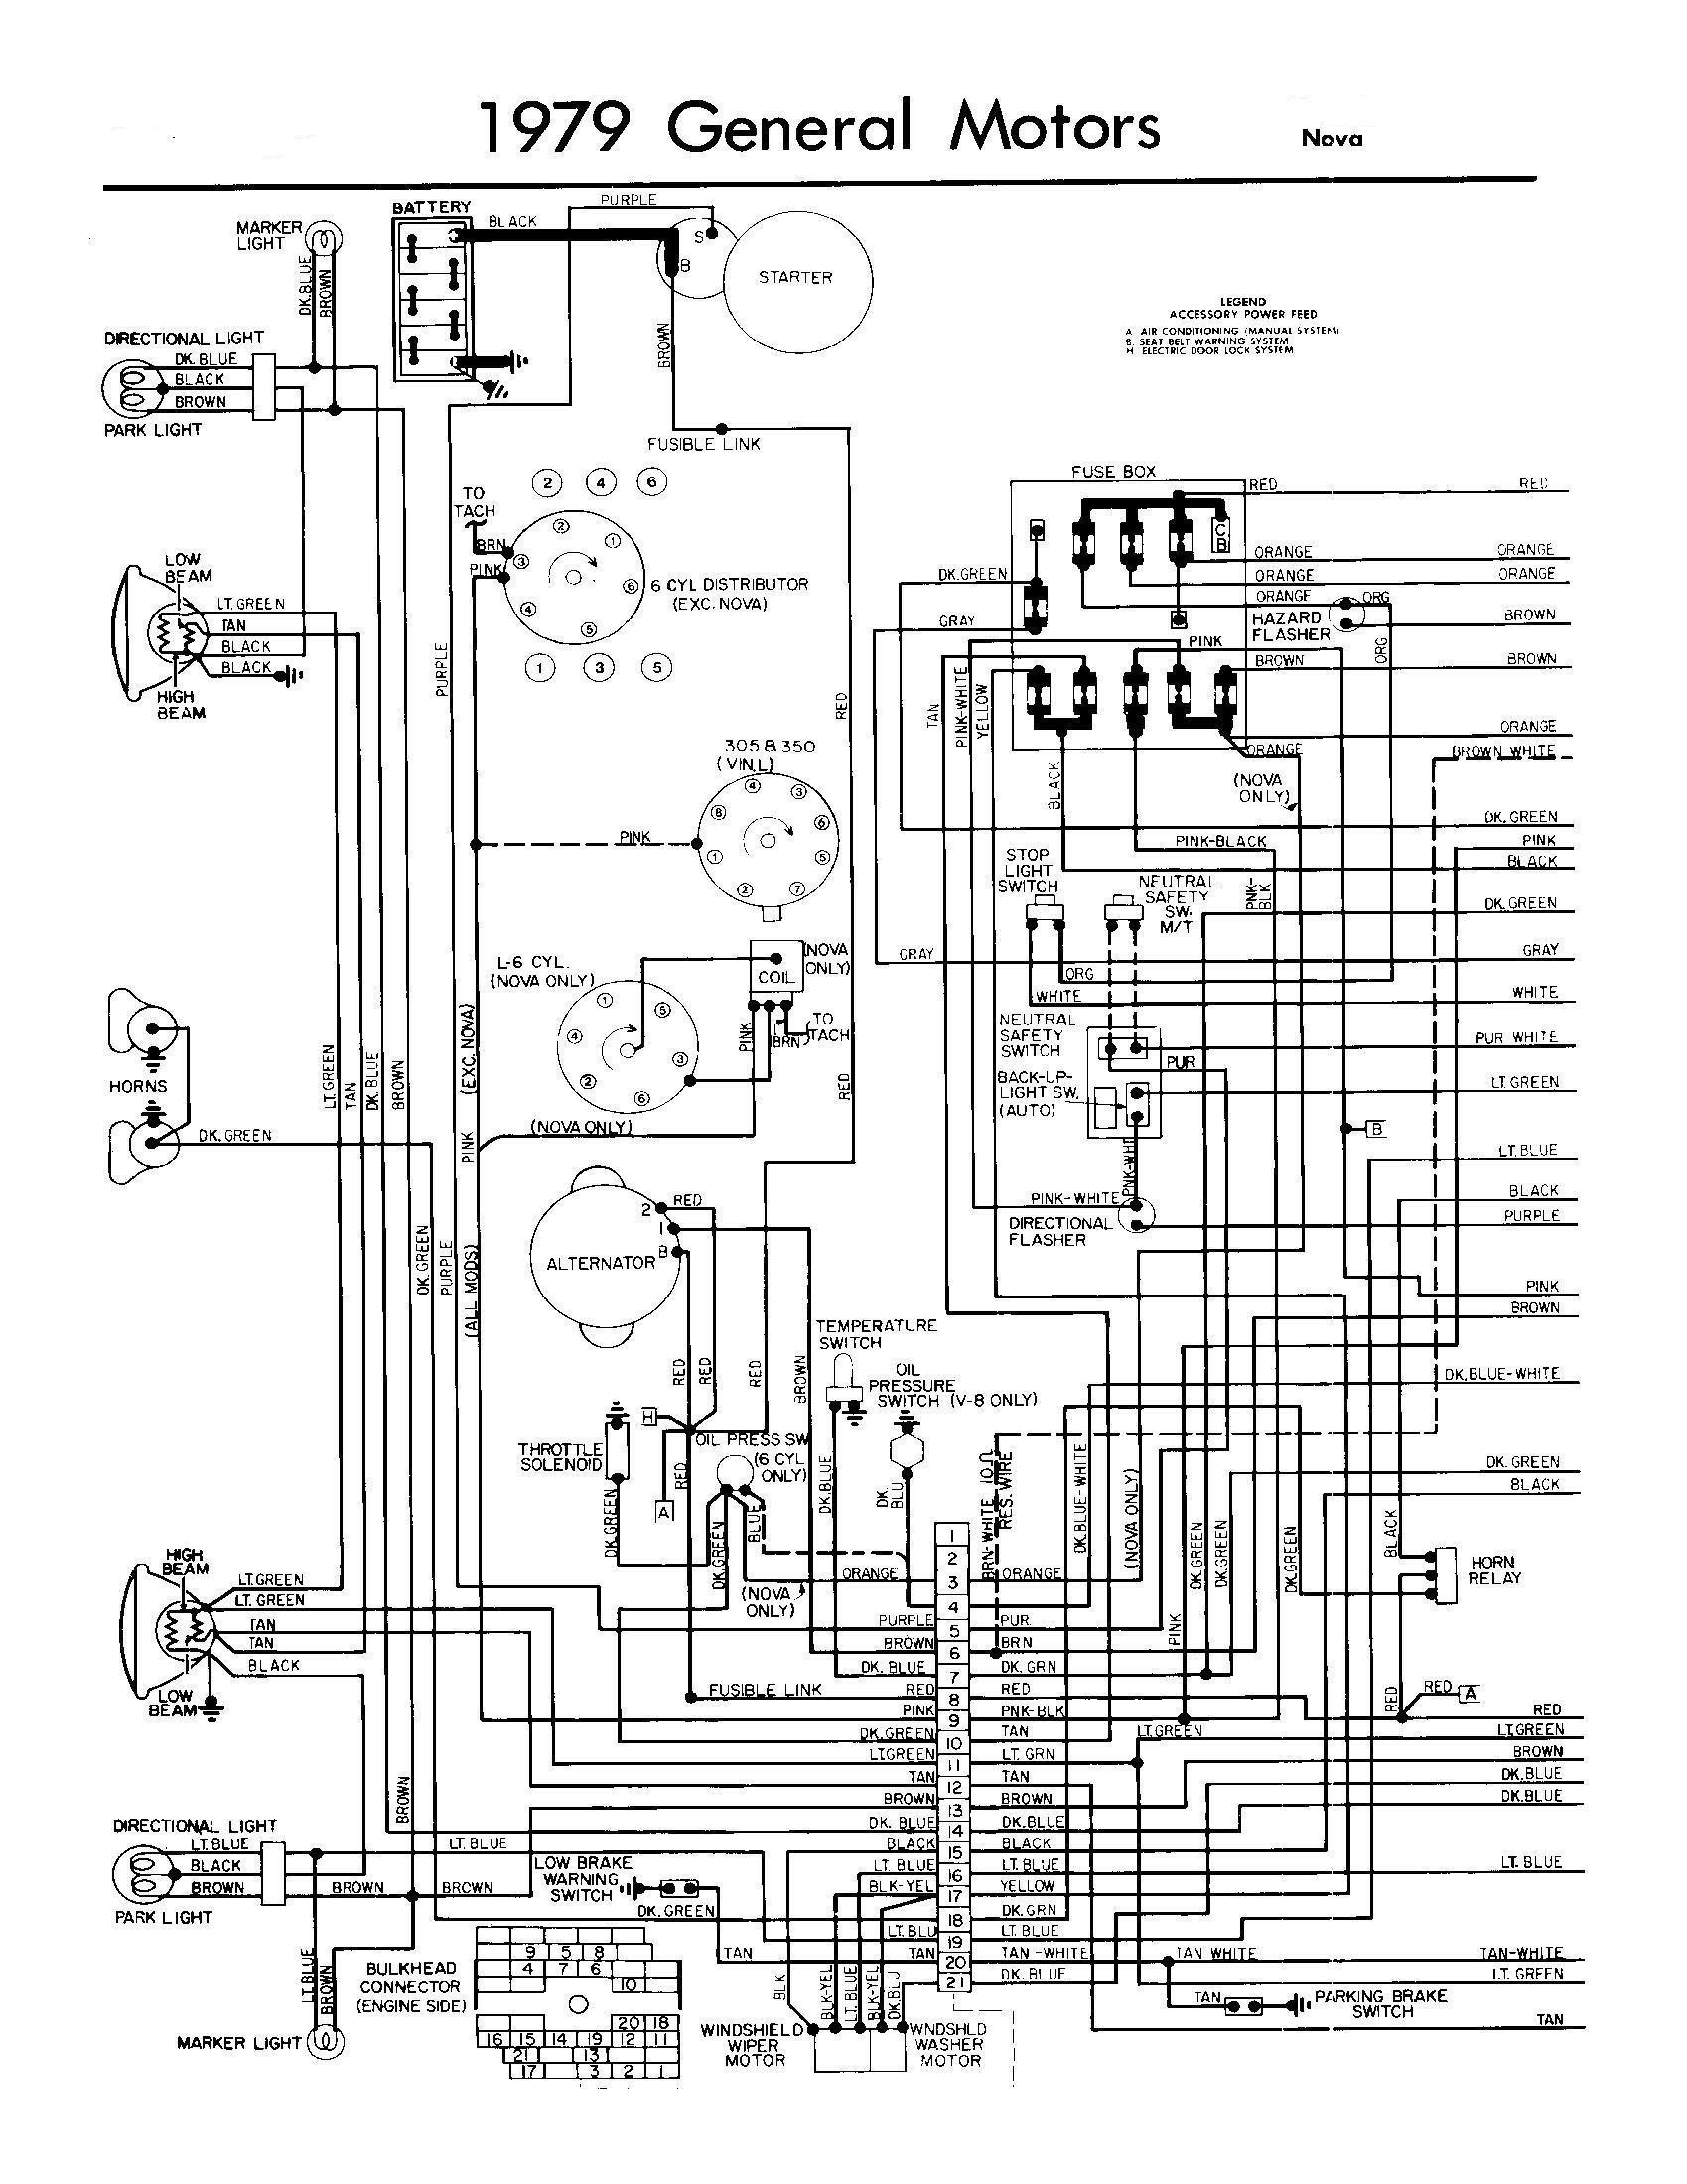 2000 s10 starter wiring diagram rj12 socket 86 chevy k5 blazer best library 1974 third level rh 20 17 12 jacobwinterstein com 1987